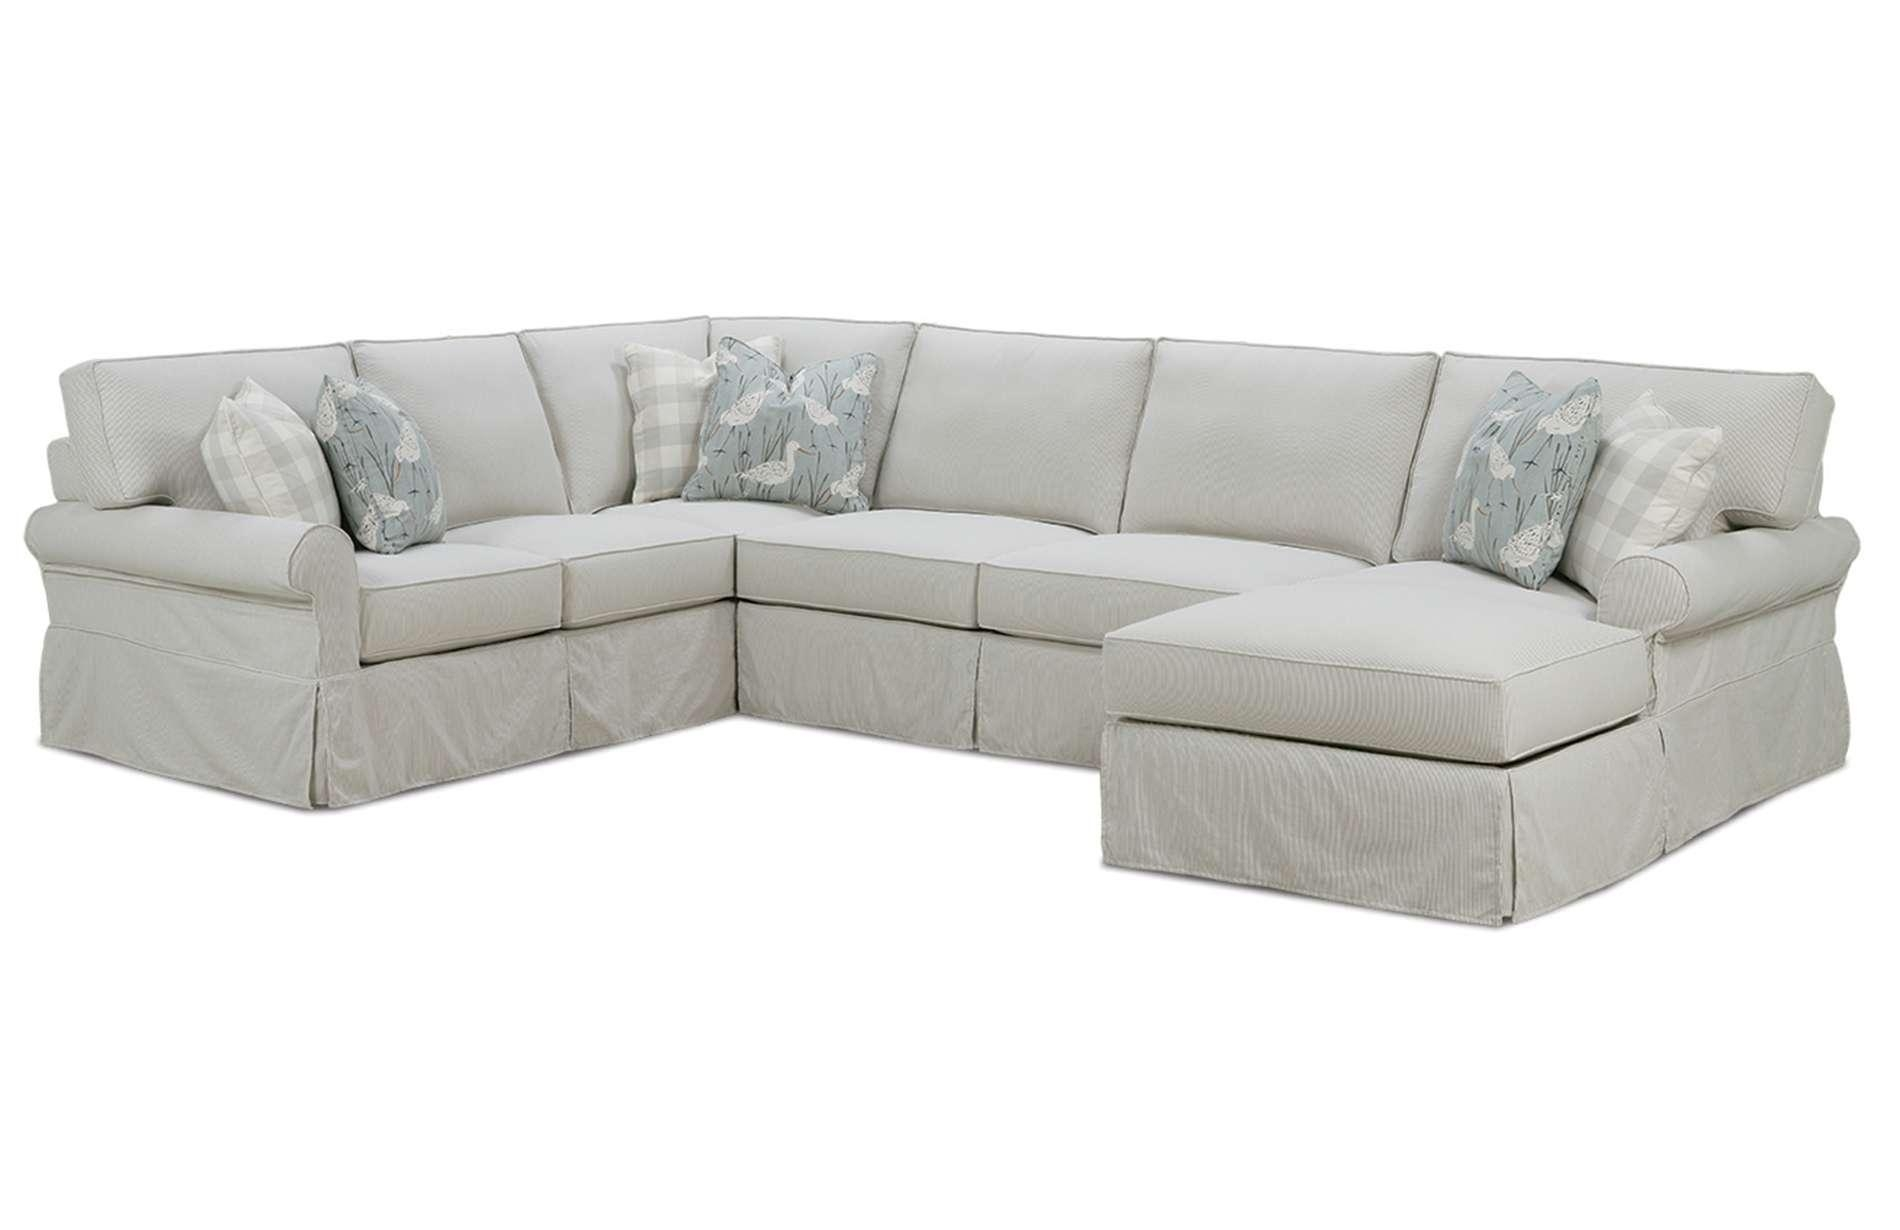 Sofas Center : Sectional Diy Slipcover For Sofa With Chaisedys In Chaise Sectional Slipcover (View 11 of 15)